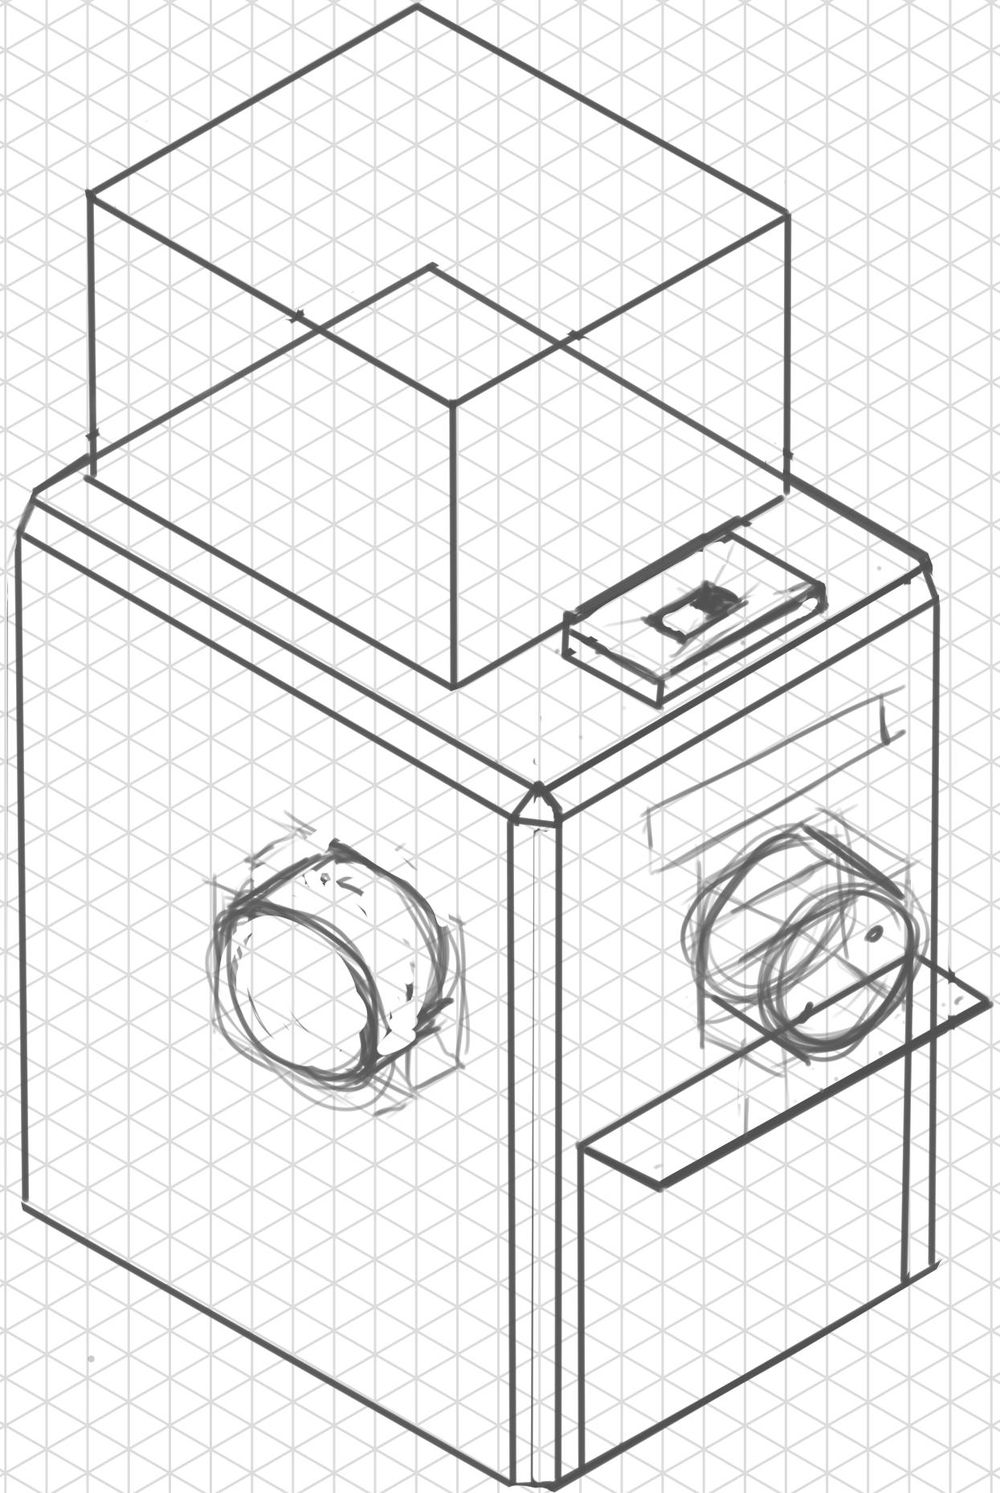 Coffee Grinder - image 1 - student project